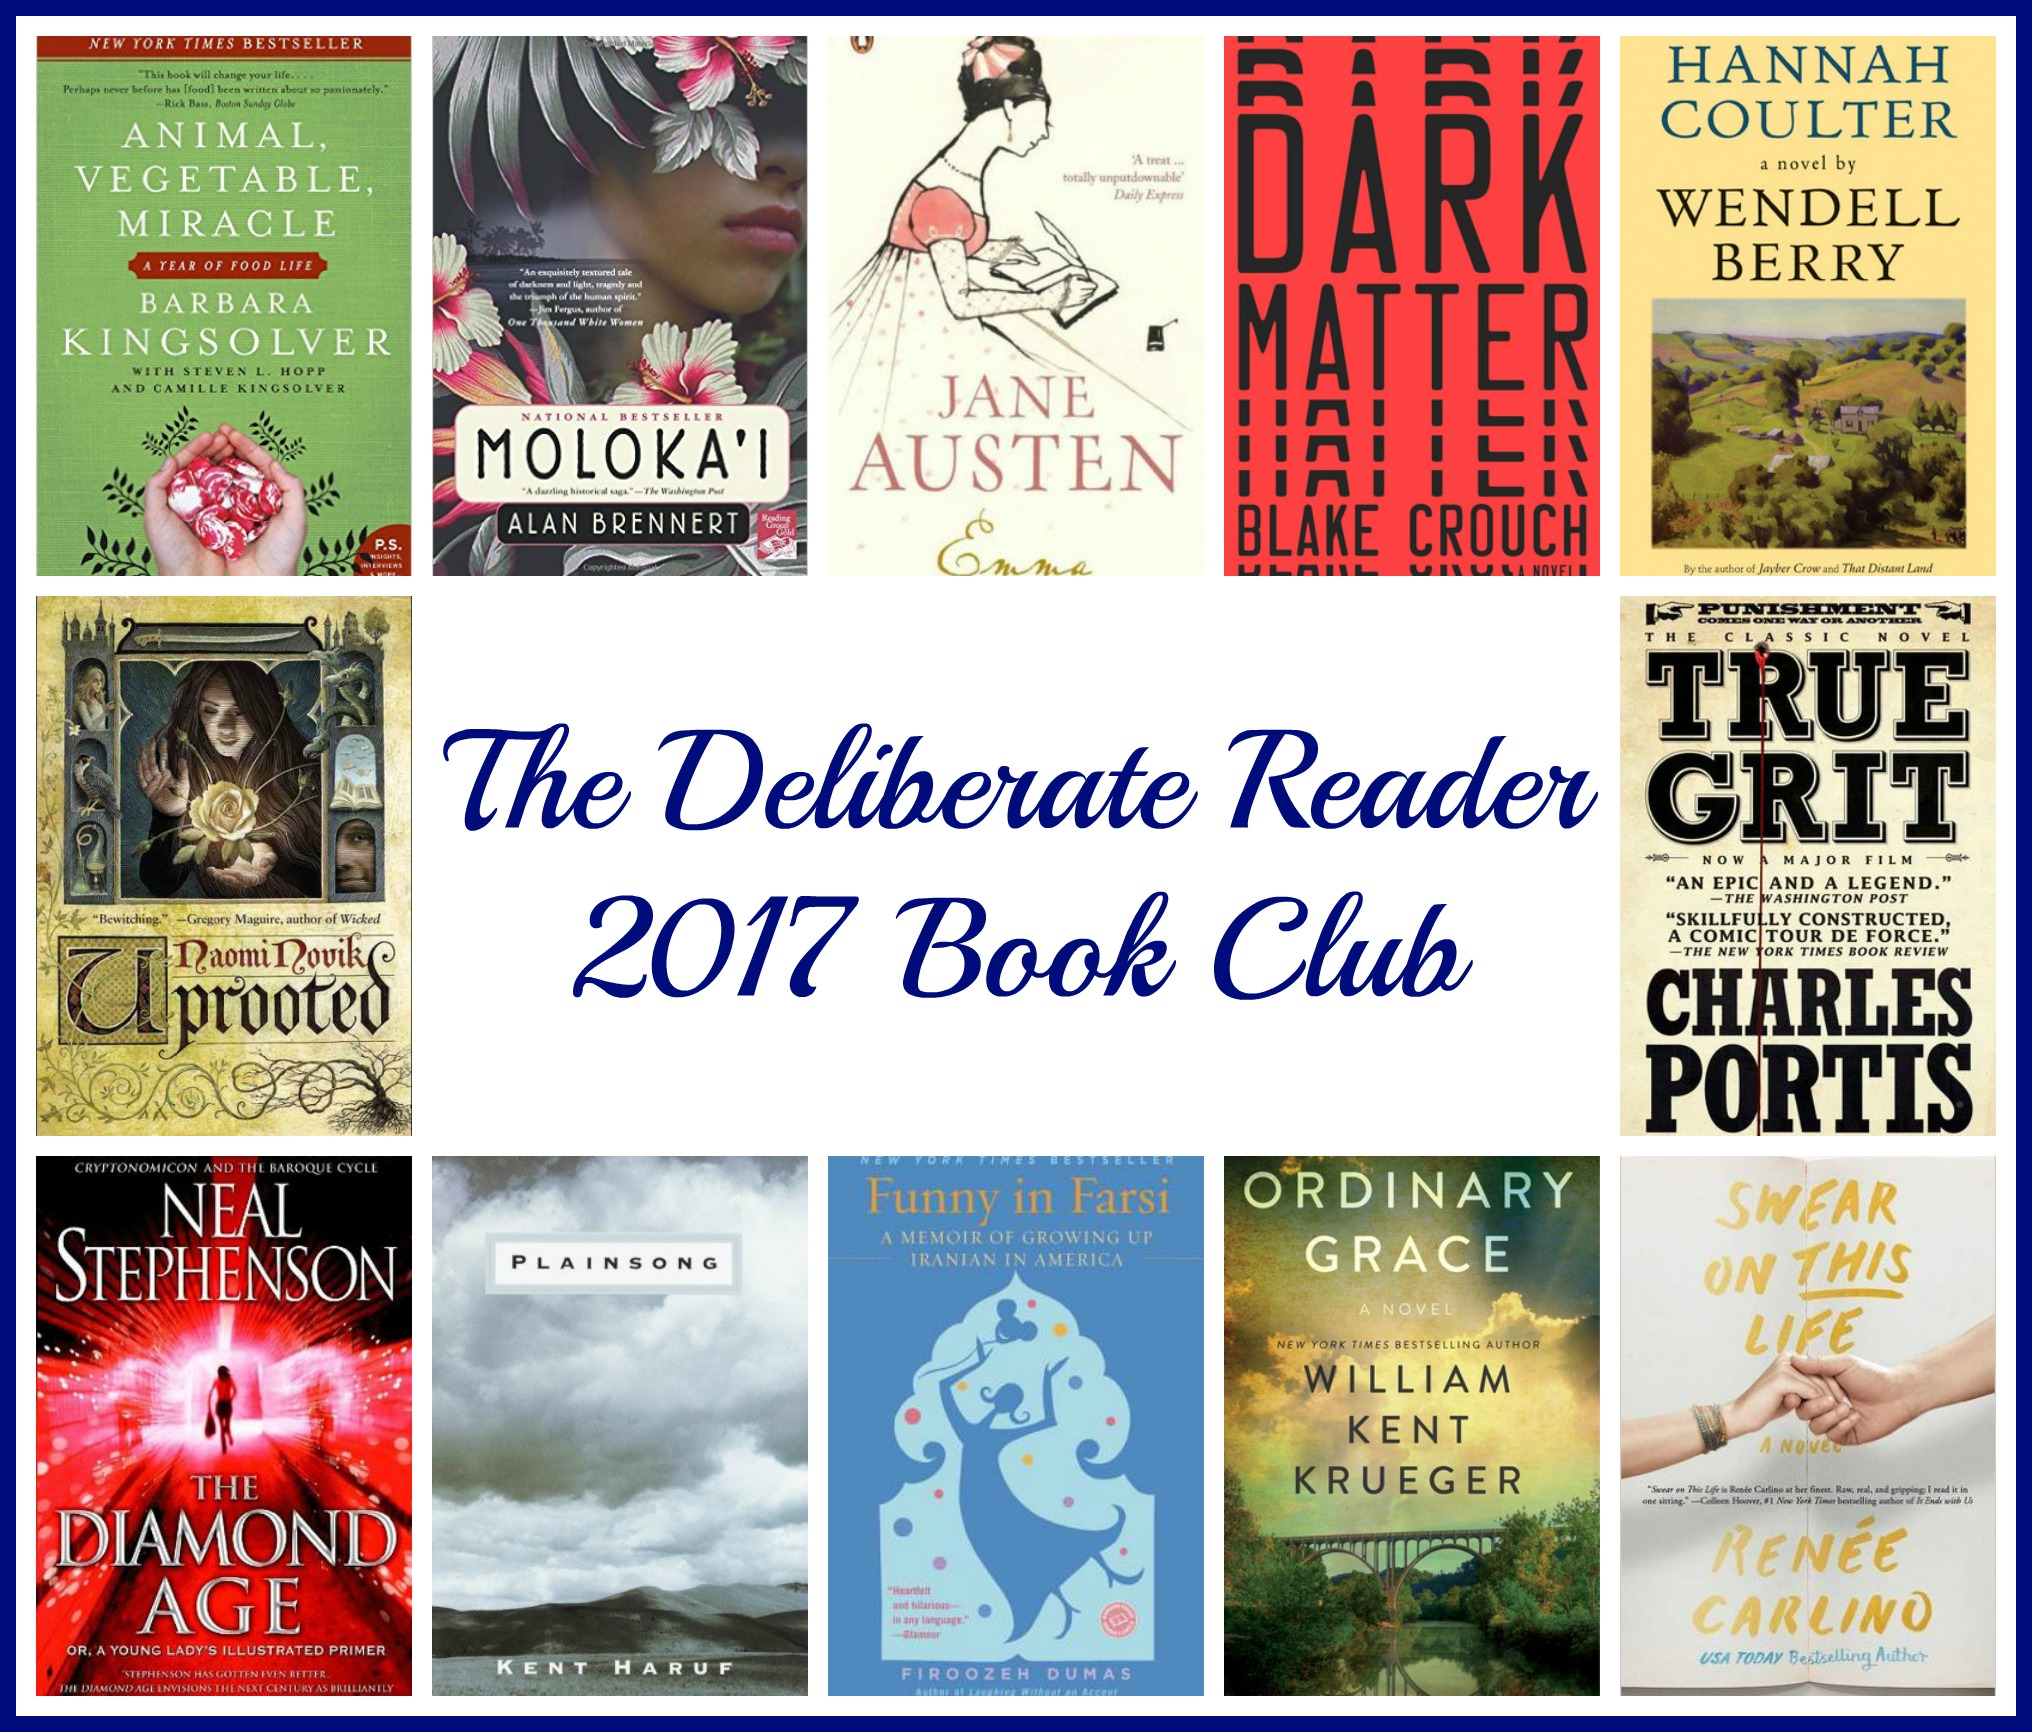 the-deliberate-reader-2017-book-club-selections